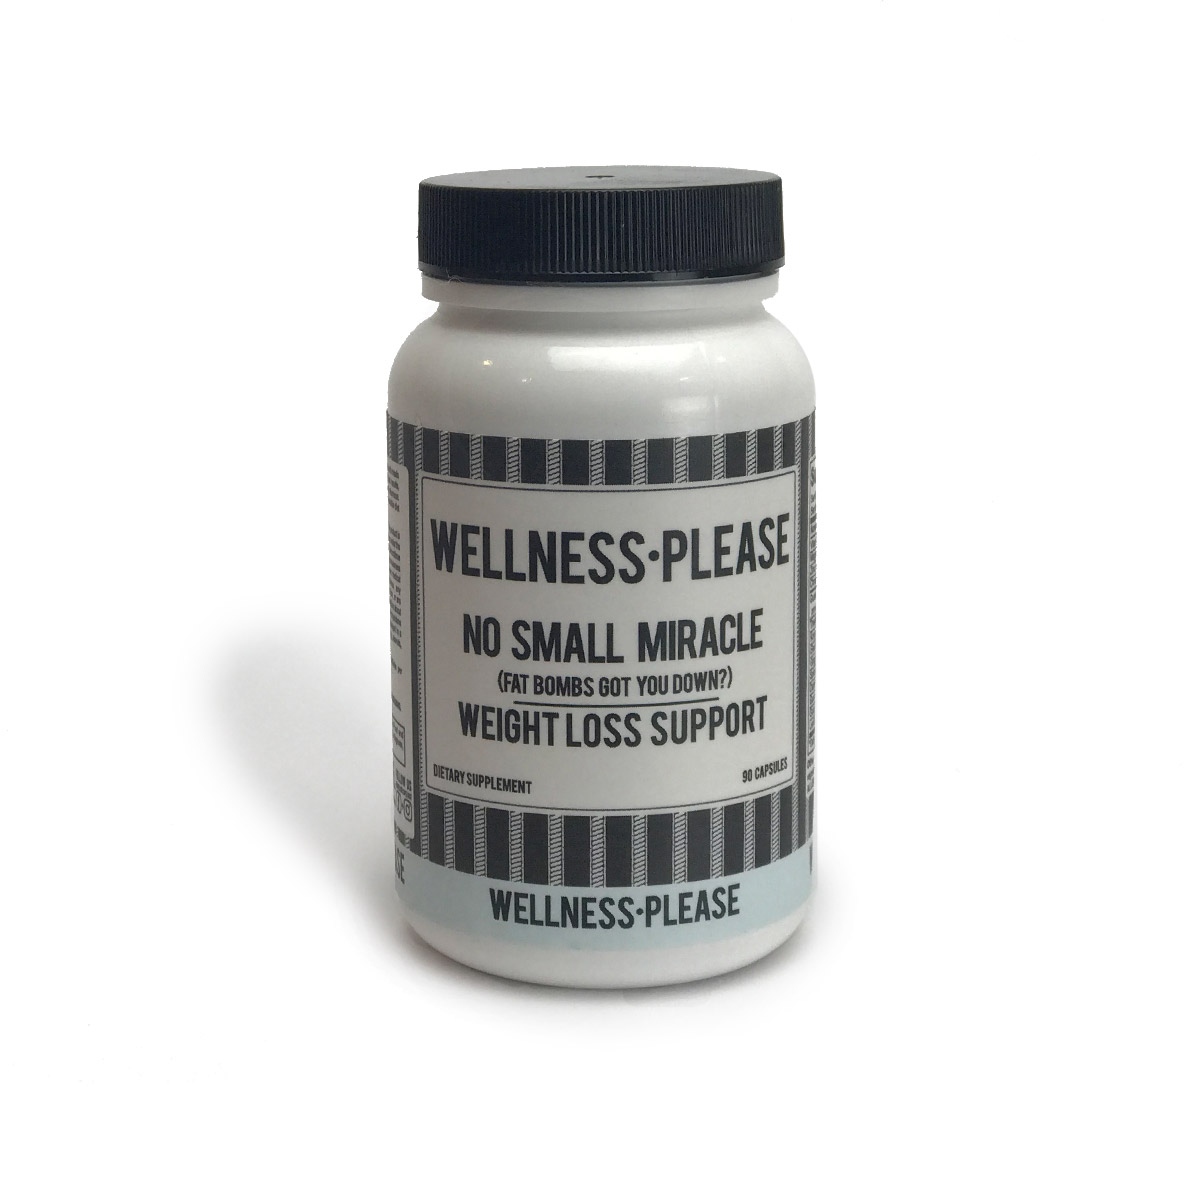 - Weight loss is a much easier task with NO SMALL MIRACLE.Our bespoke formula is an effective tool for mindful eating, weight loss and reduced risk of cardiovascular disease.Use in tandem with CURB YOUR CRAVING appetite suppressant for a formidable, preventative weight loss team!